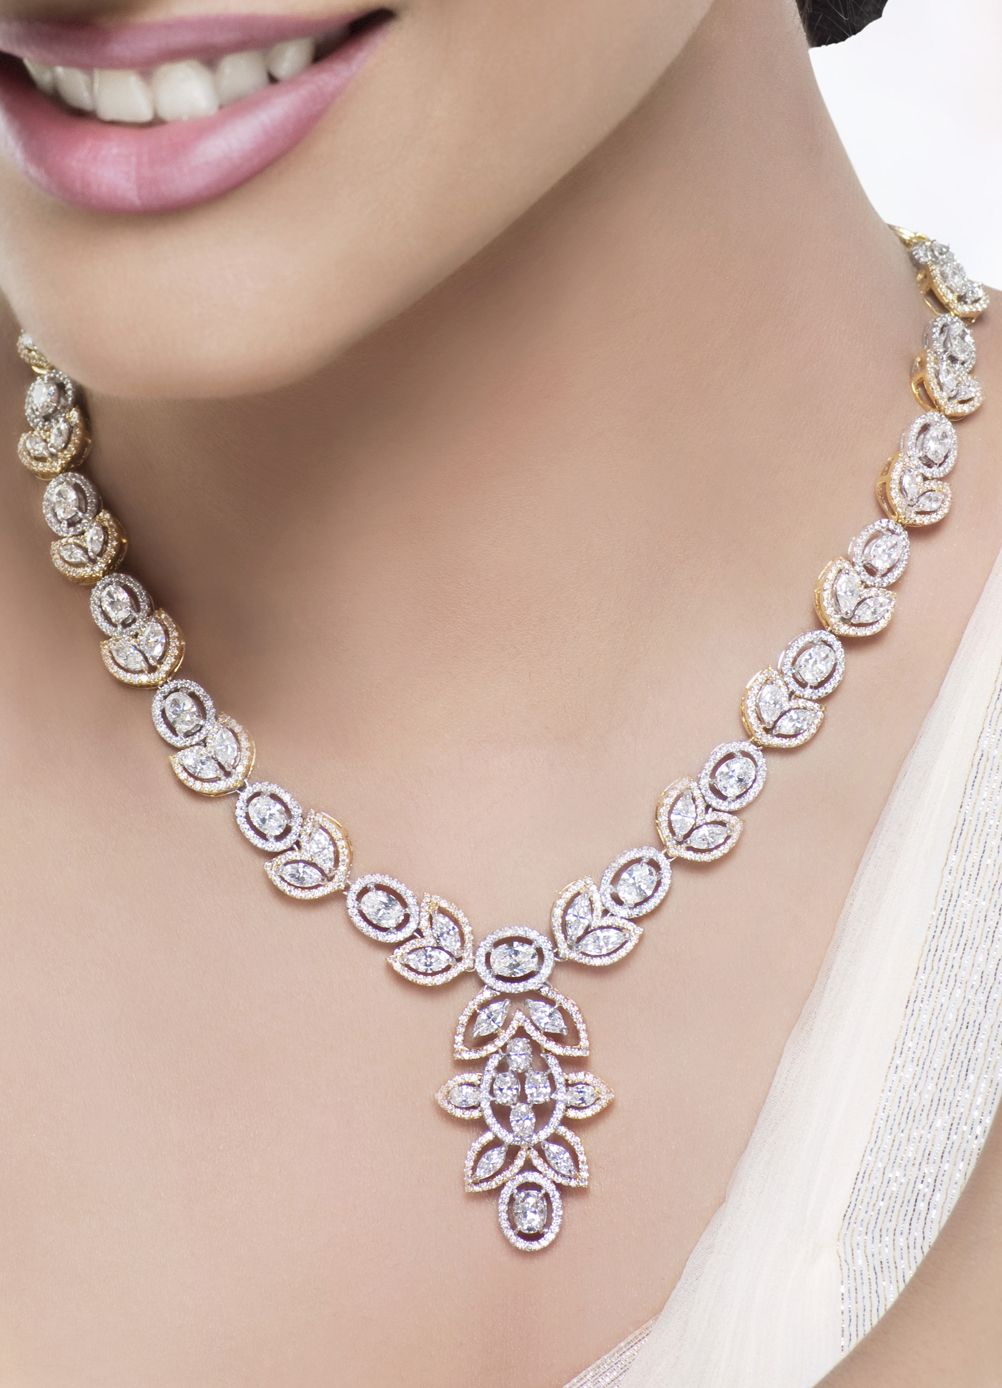 Do not use any chemicals on your jewelery stones. These ...